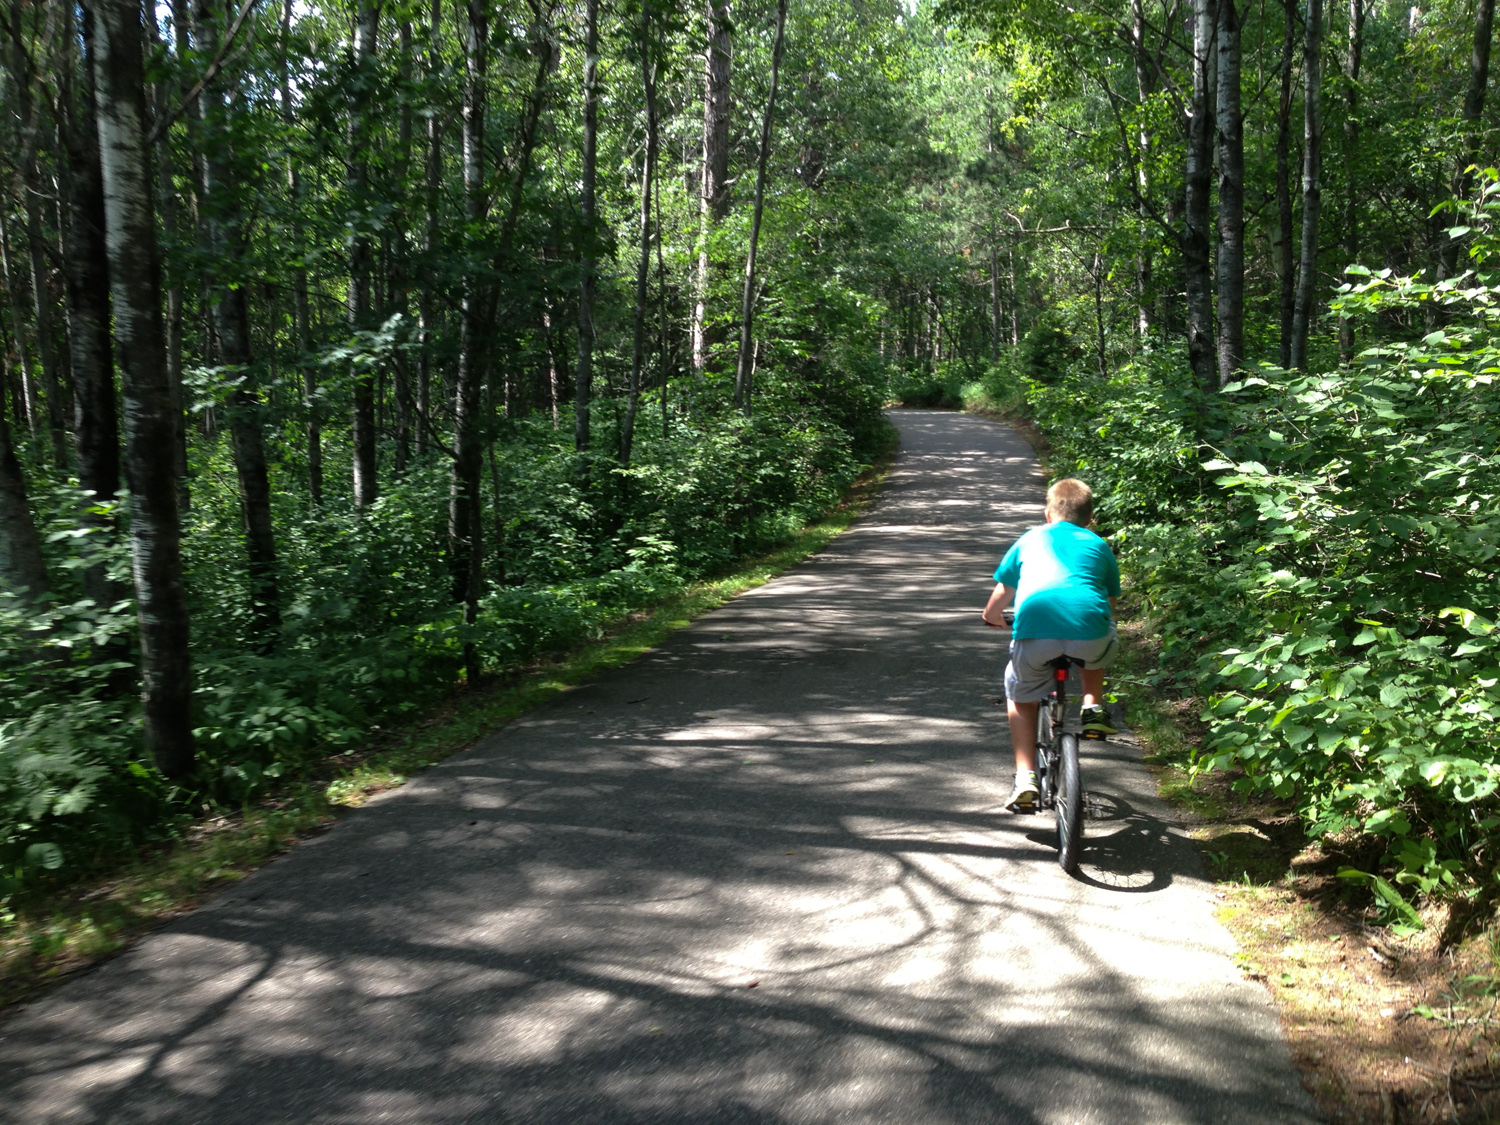 Bike trail within the state park